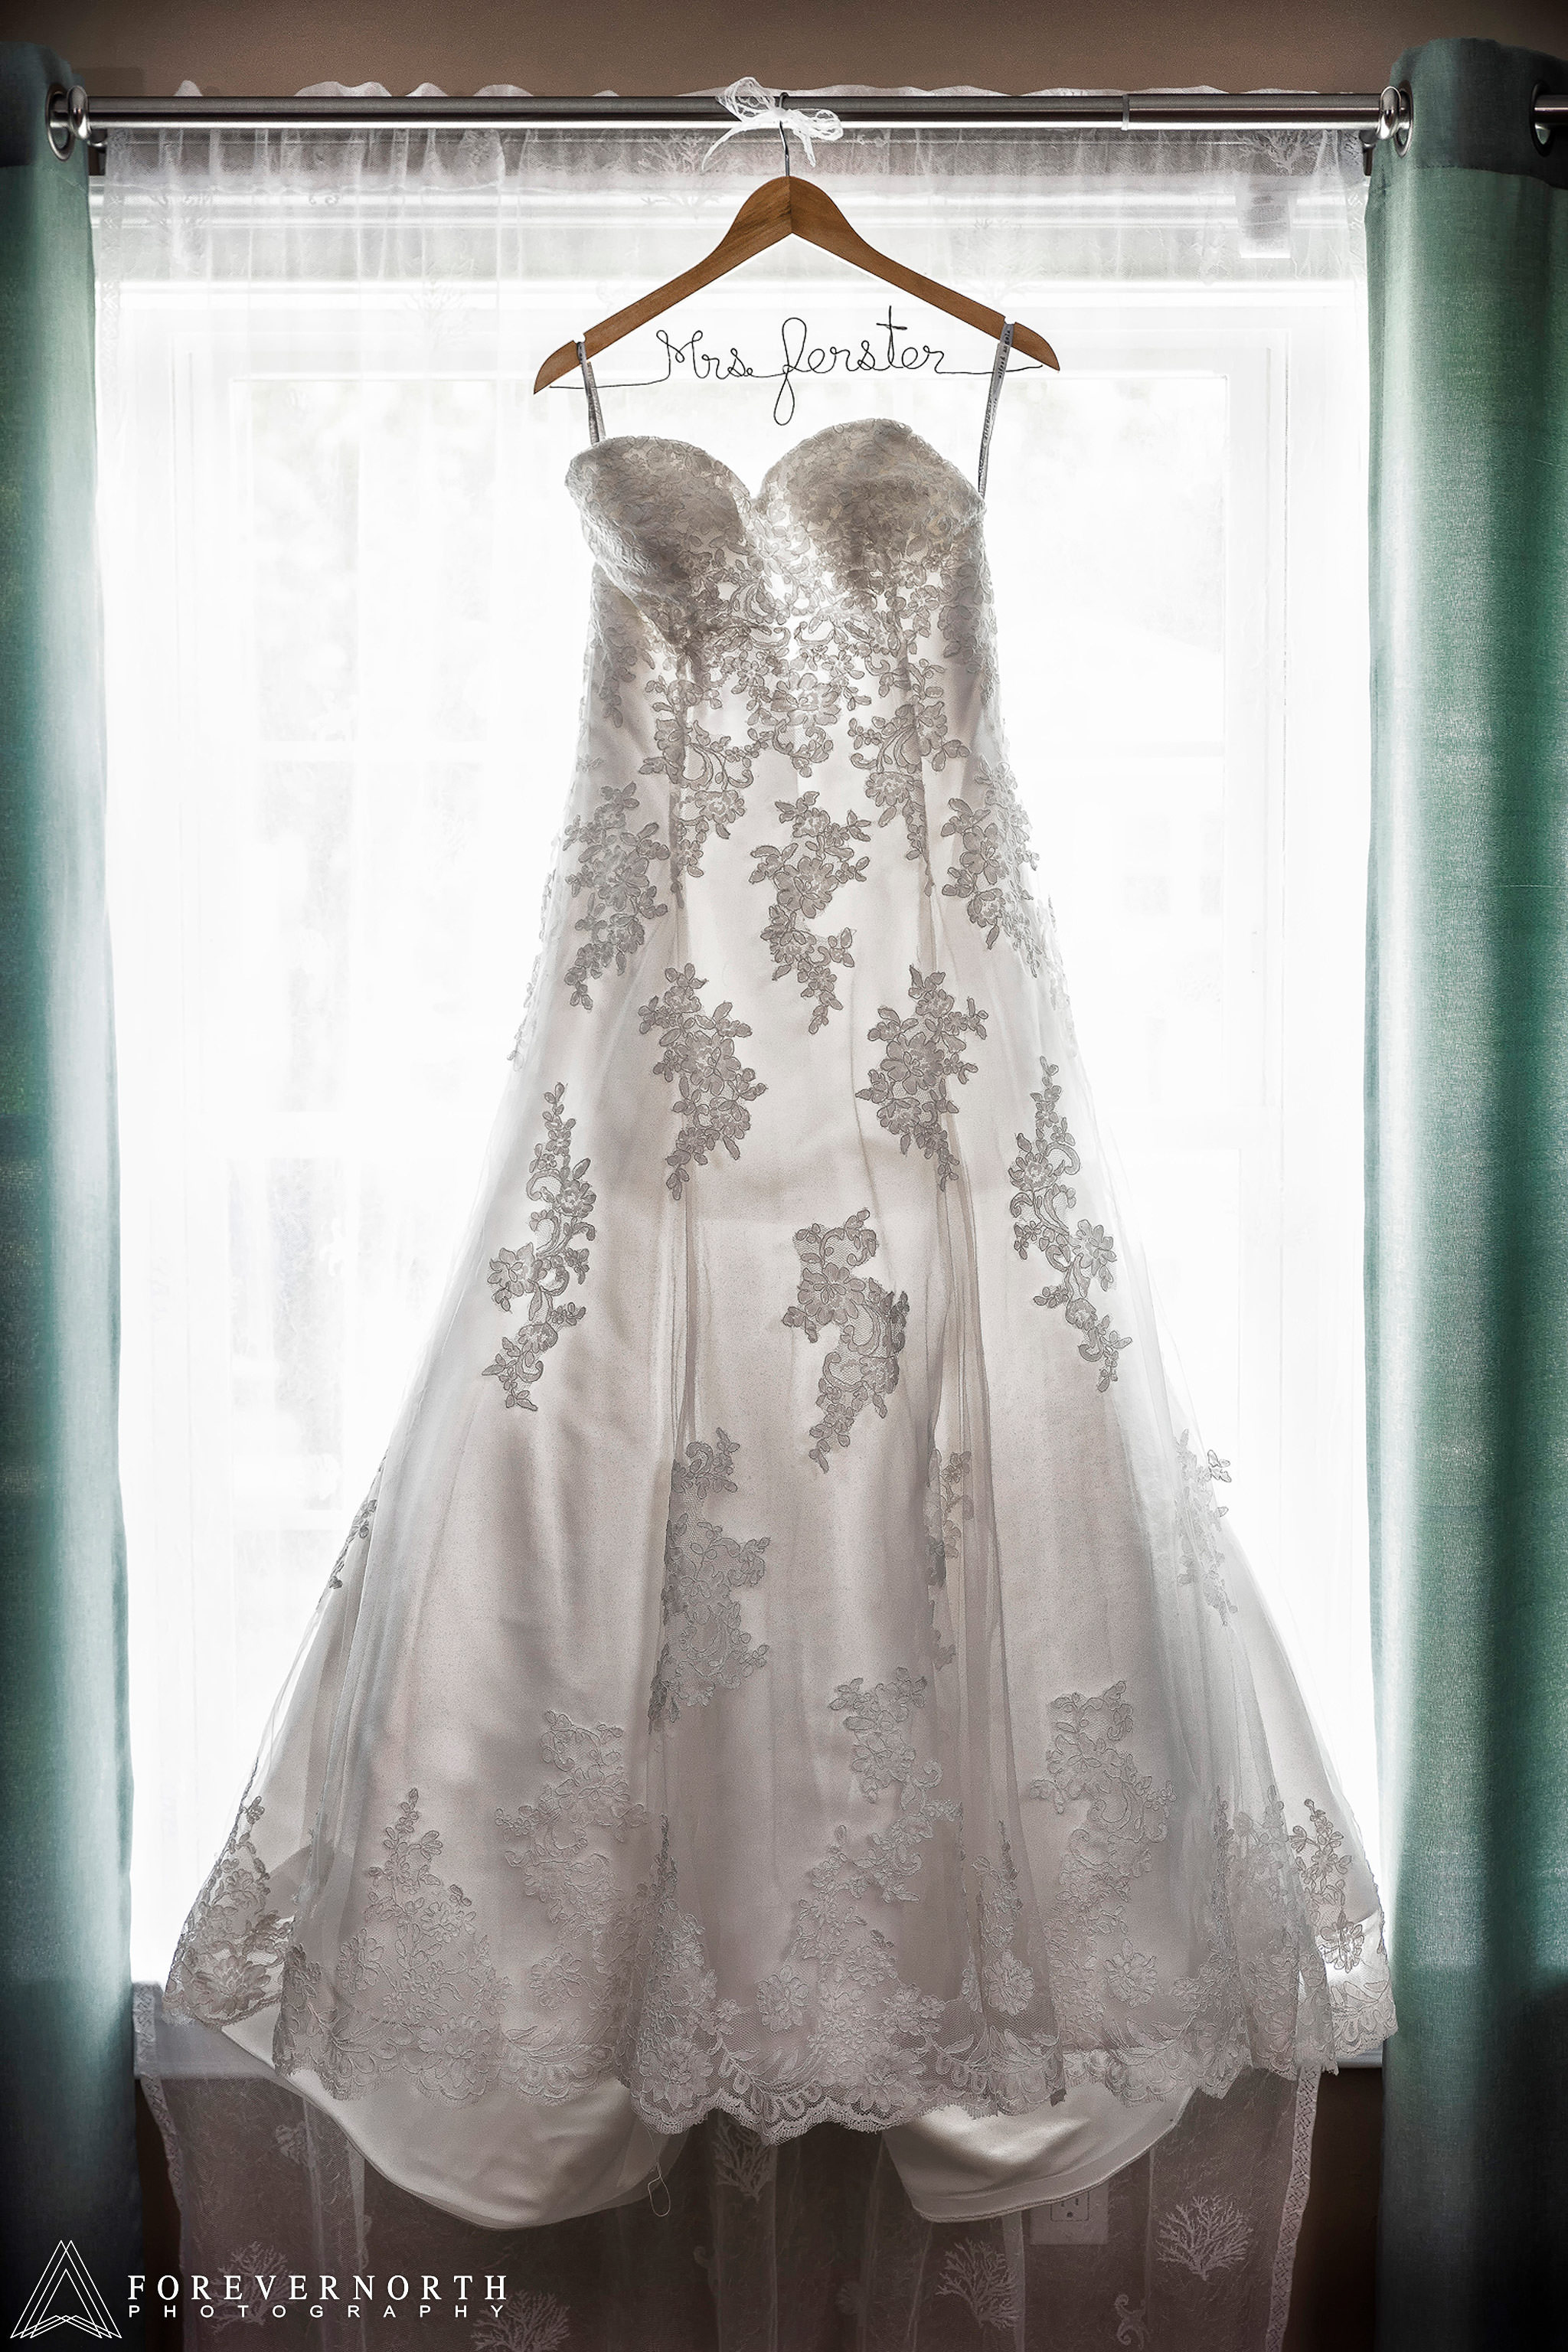 A detailed shot by the wedding photographer of the bride's dress.